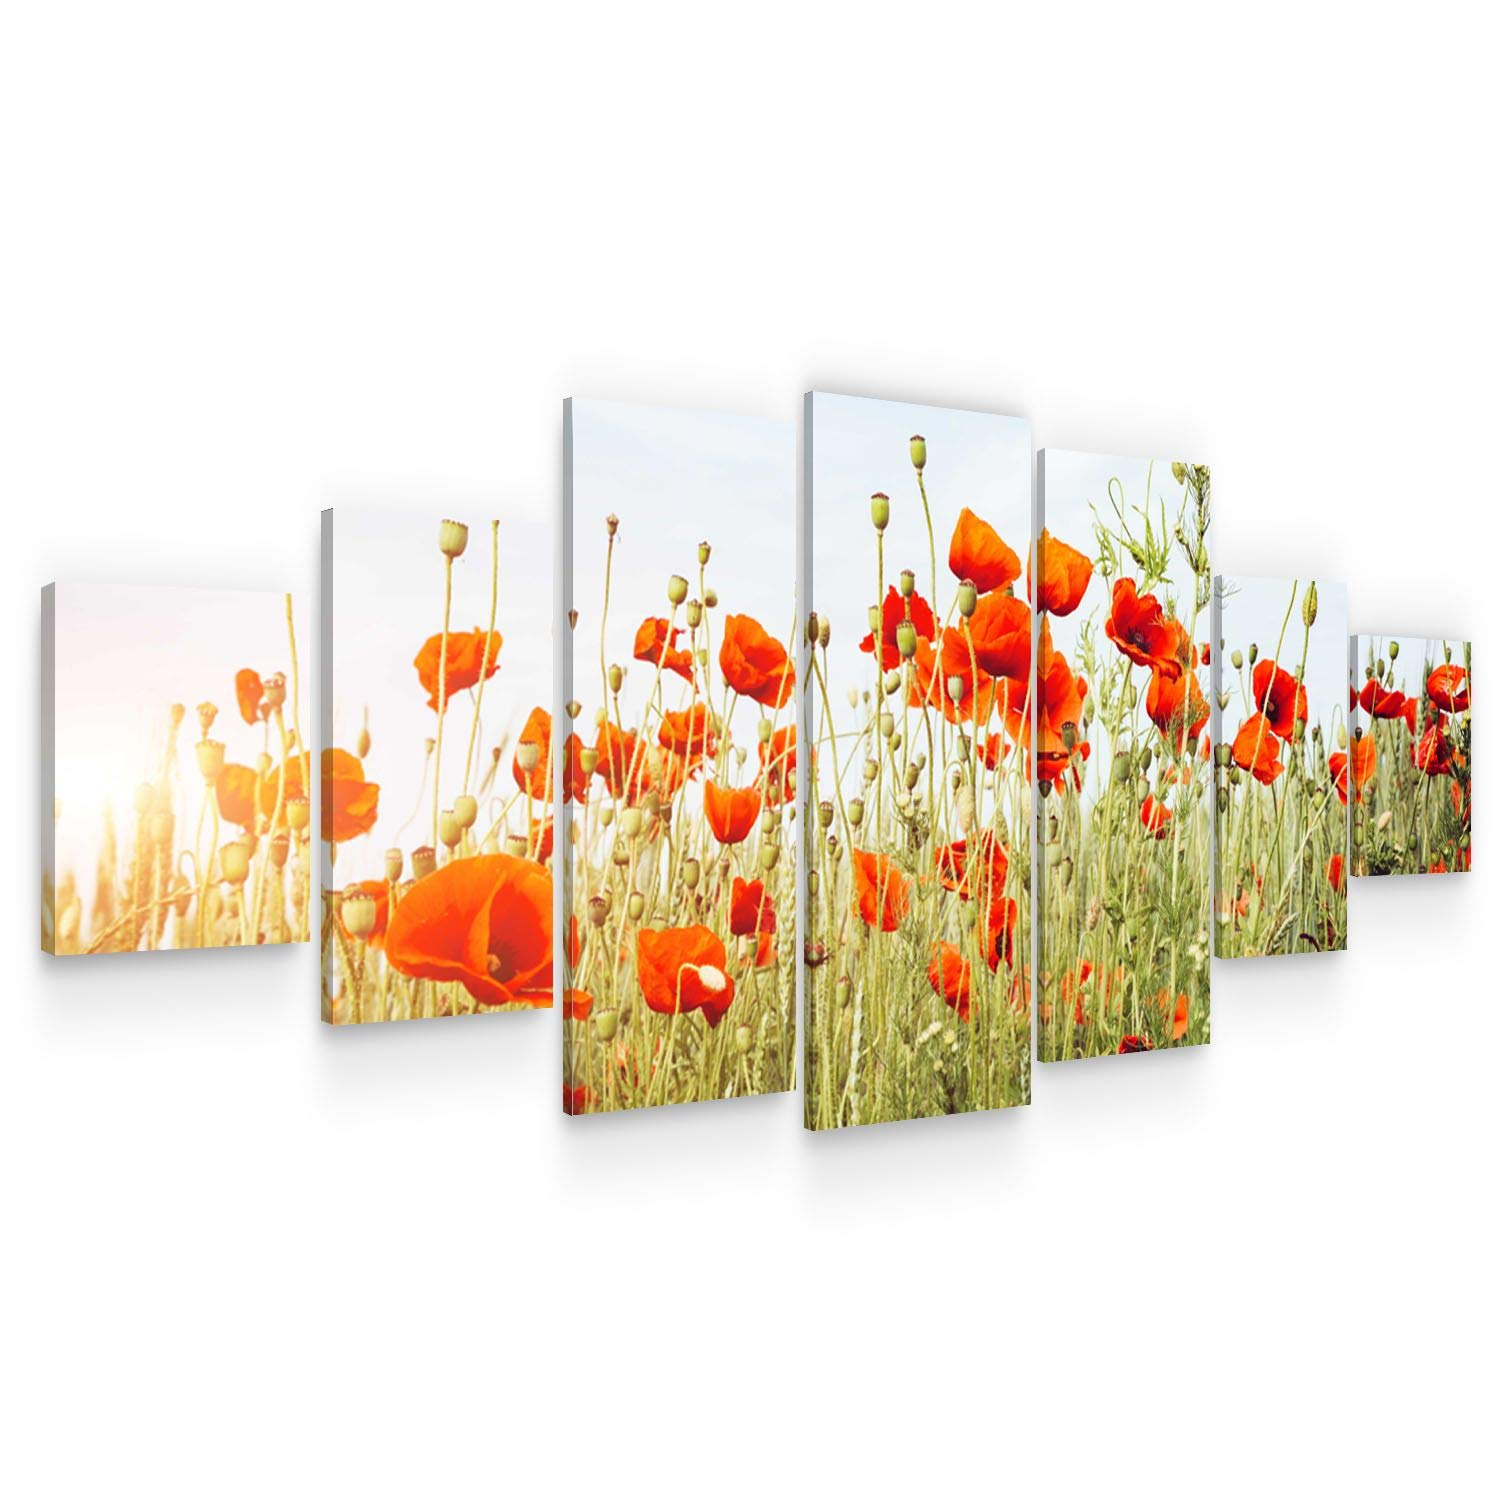 Startonight Large Canvas Wall Art Flowers - Red Poppies in The Summer - Huge Framed Modern Set of 7 Panels 40 x 95 Inches